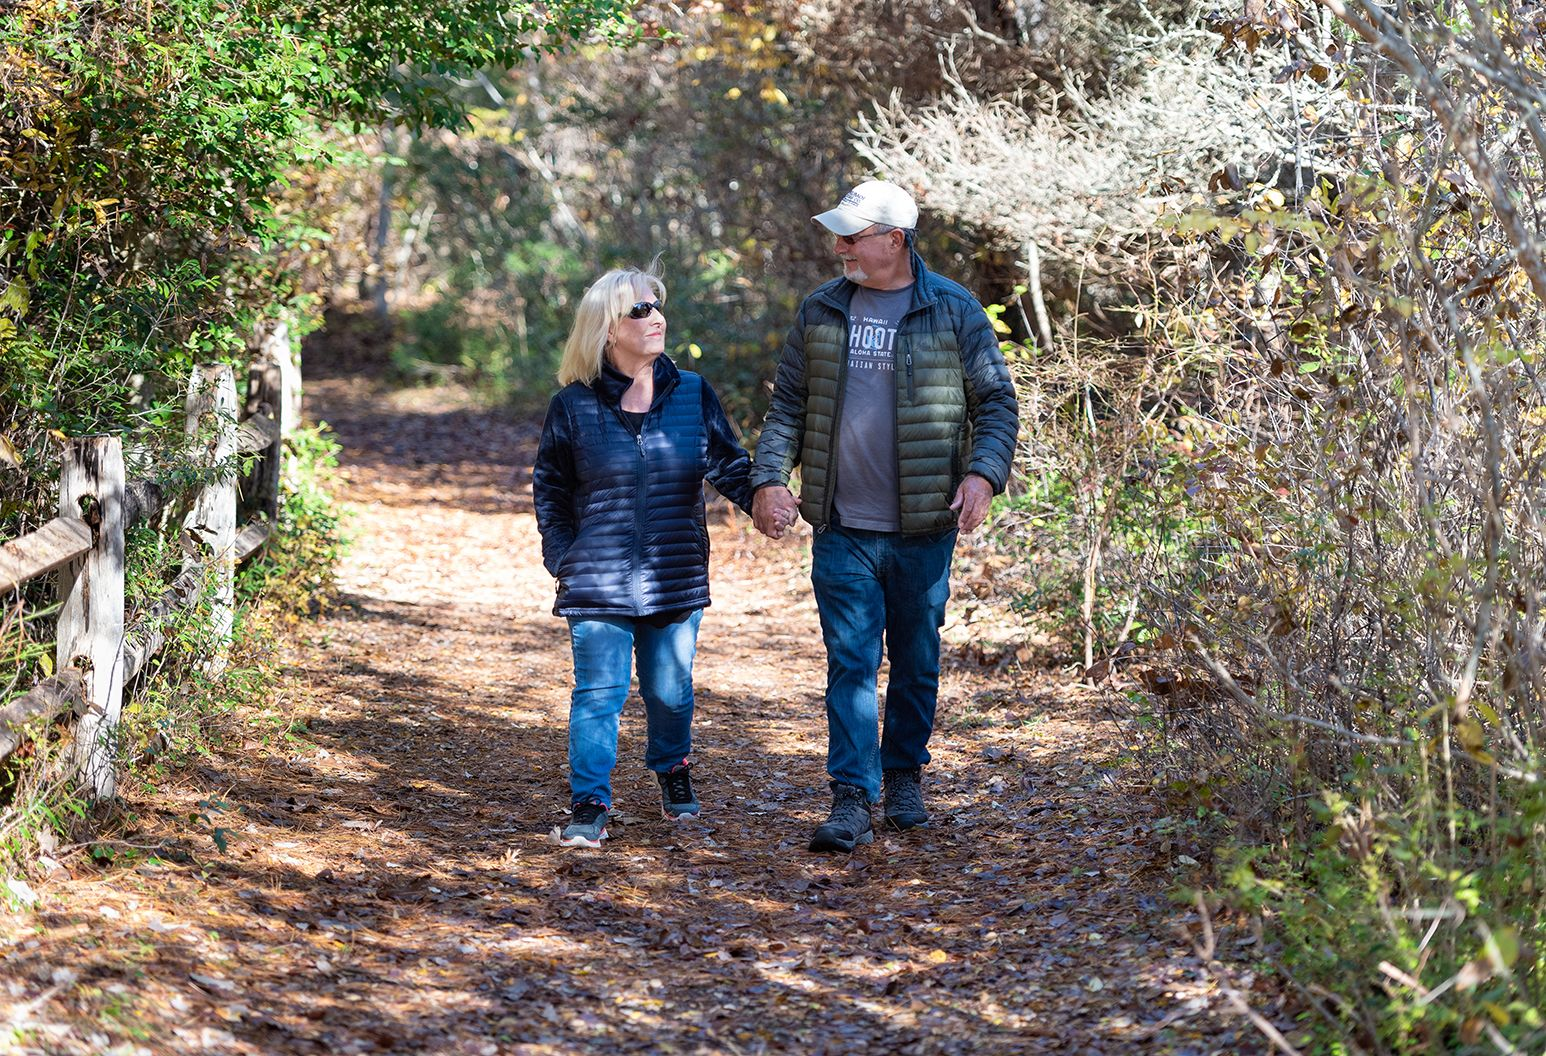 A middle-aged couple holds hands and walks down a sun-lit nature trail together.